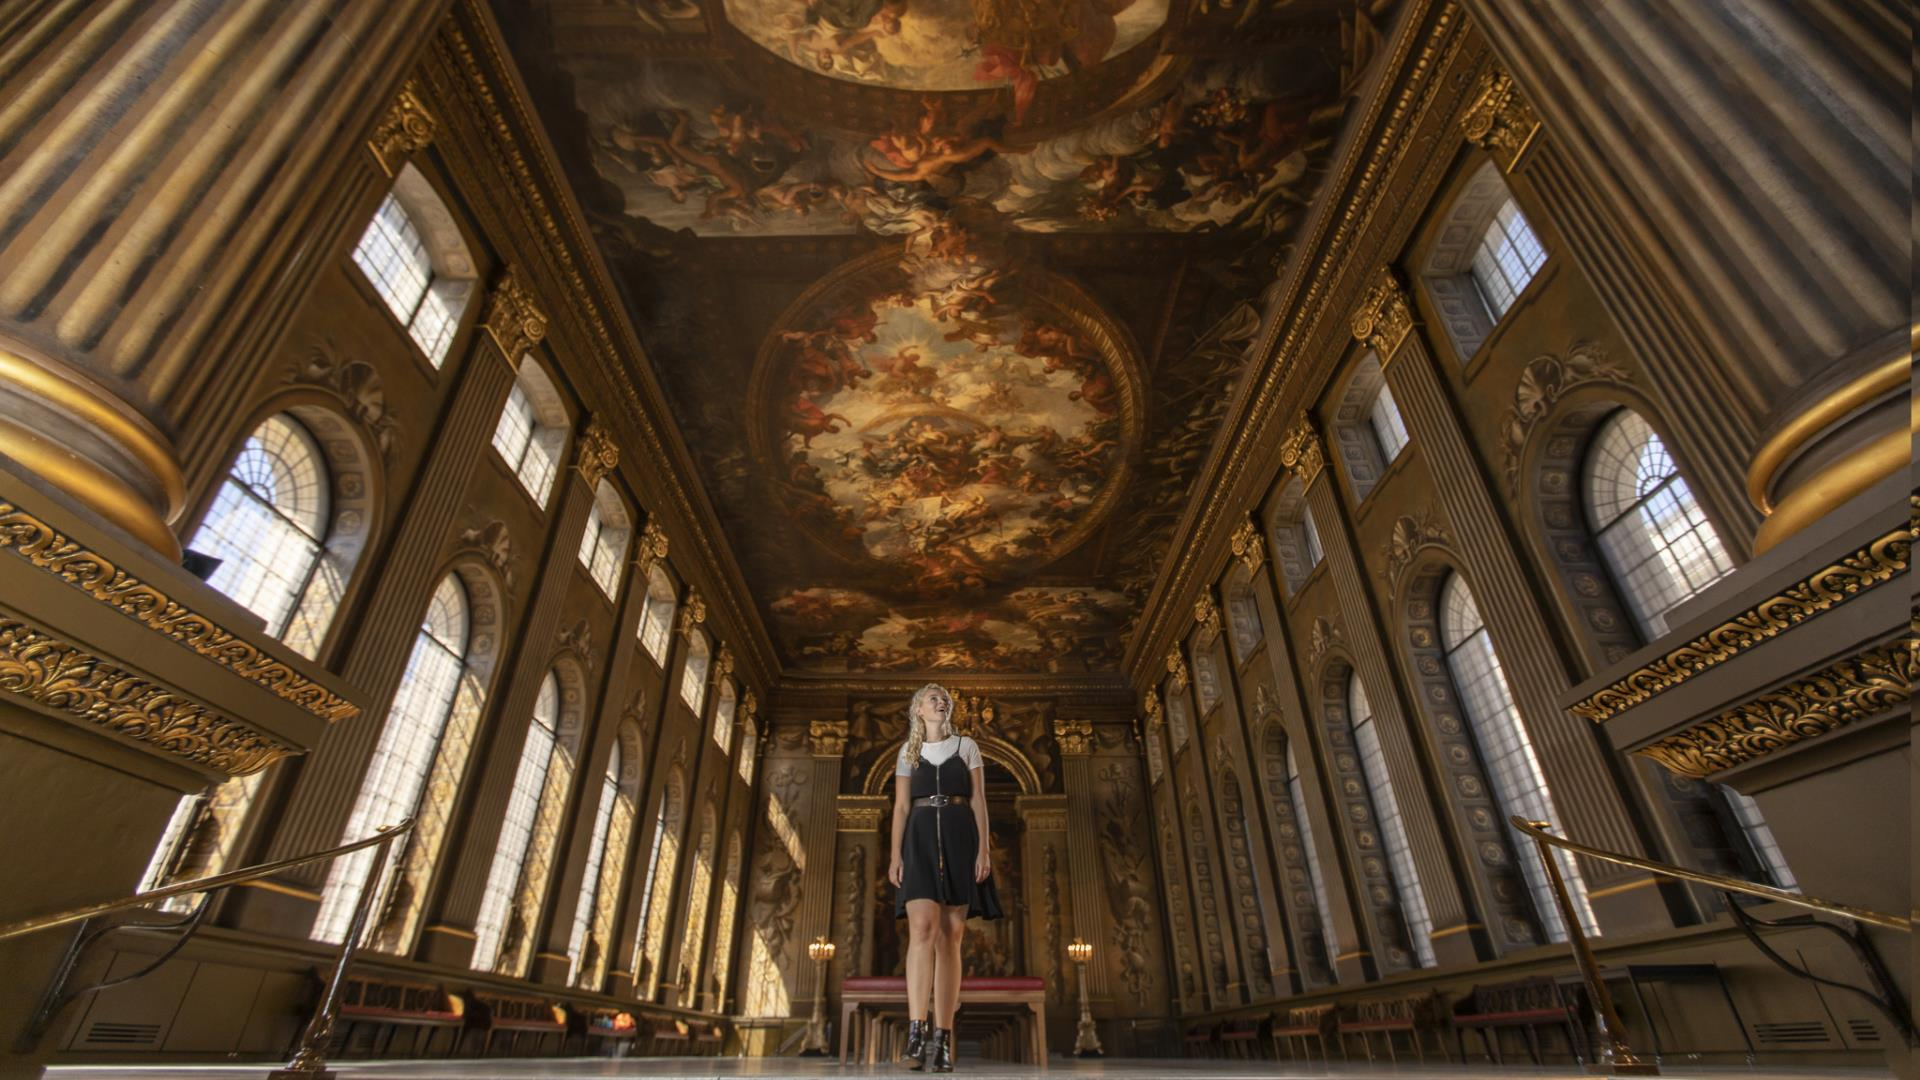 A girl marvels at the ceiling at the Painted Hall at the Old Royal Naval College in Greenwich.